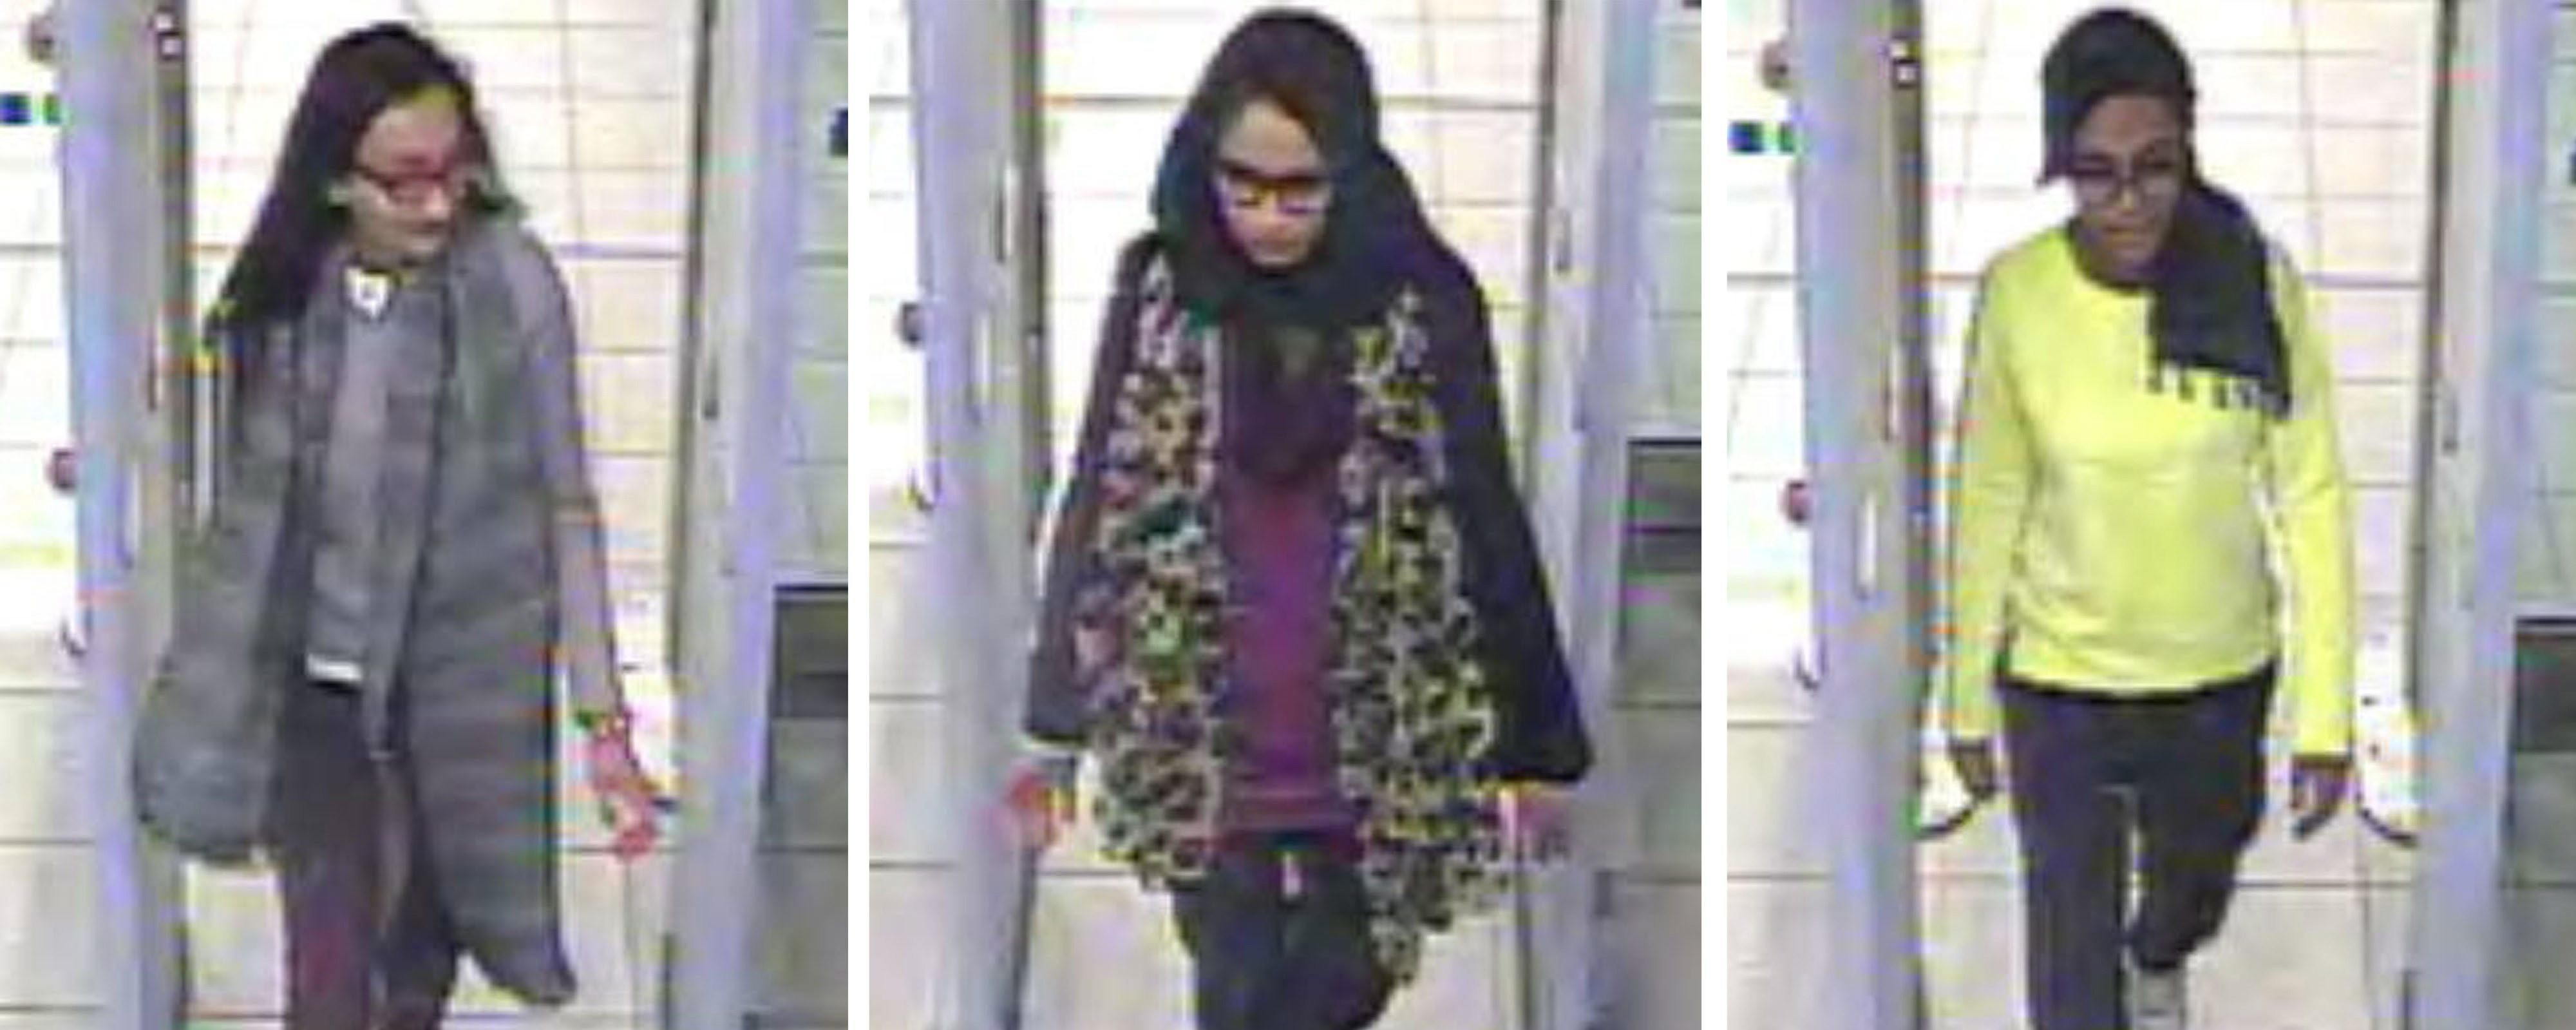 A UK teen girl who joined the Islamic State is believed dead